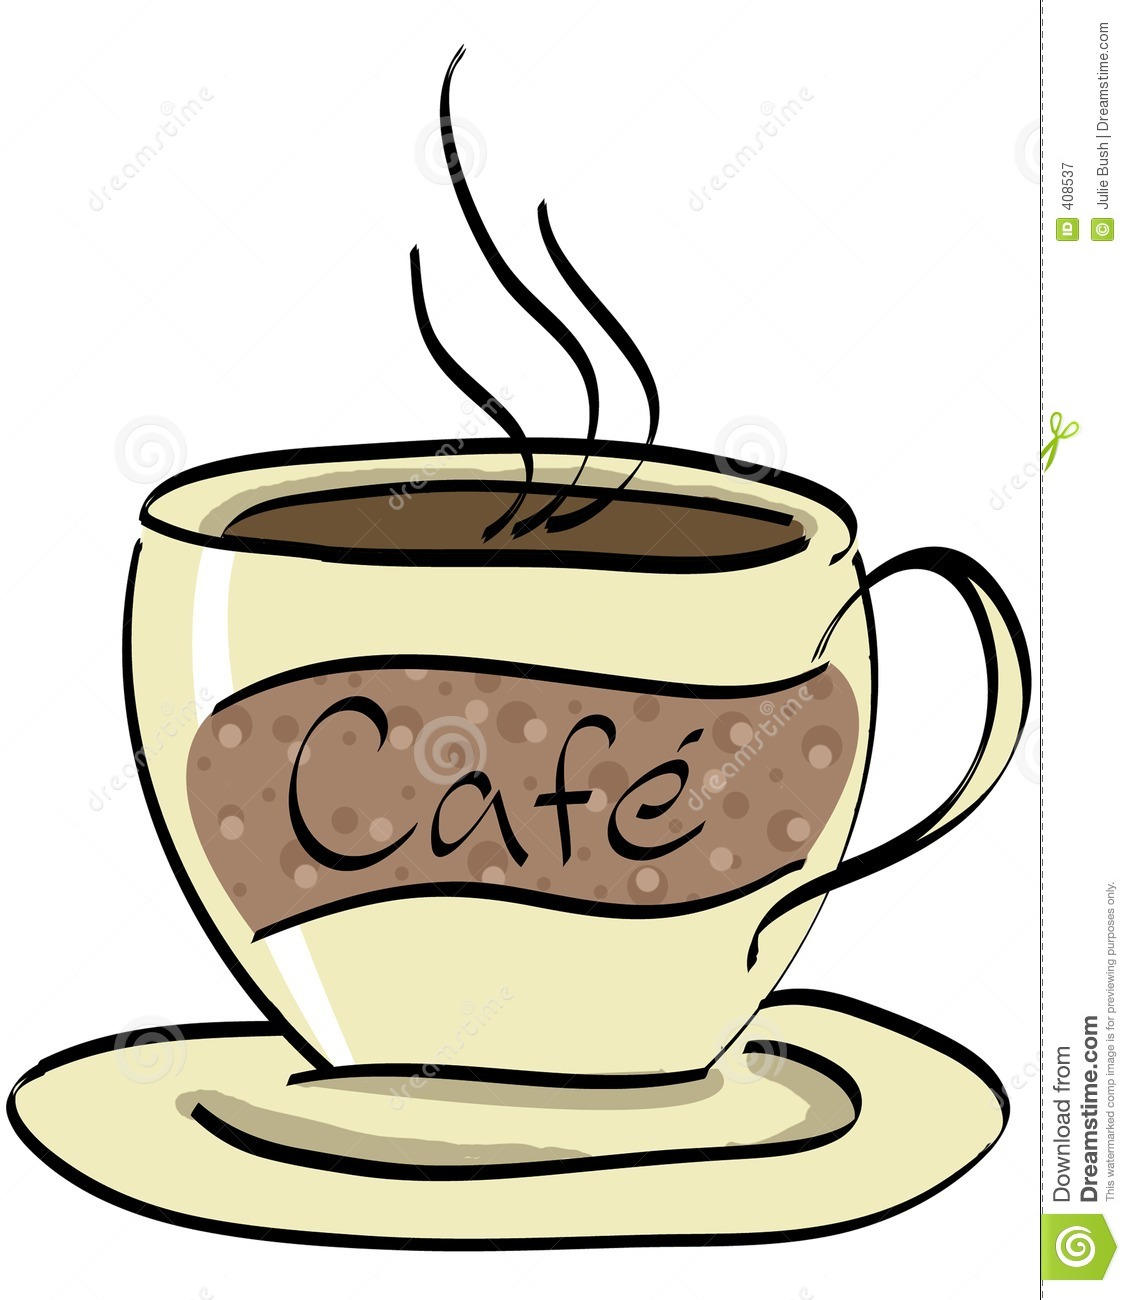 Clipart Kuchen Und Kaffee Cafe 2 Stock Illustrationer Illustration Av Kaffe